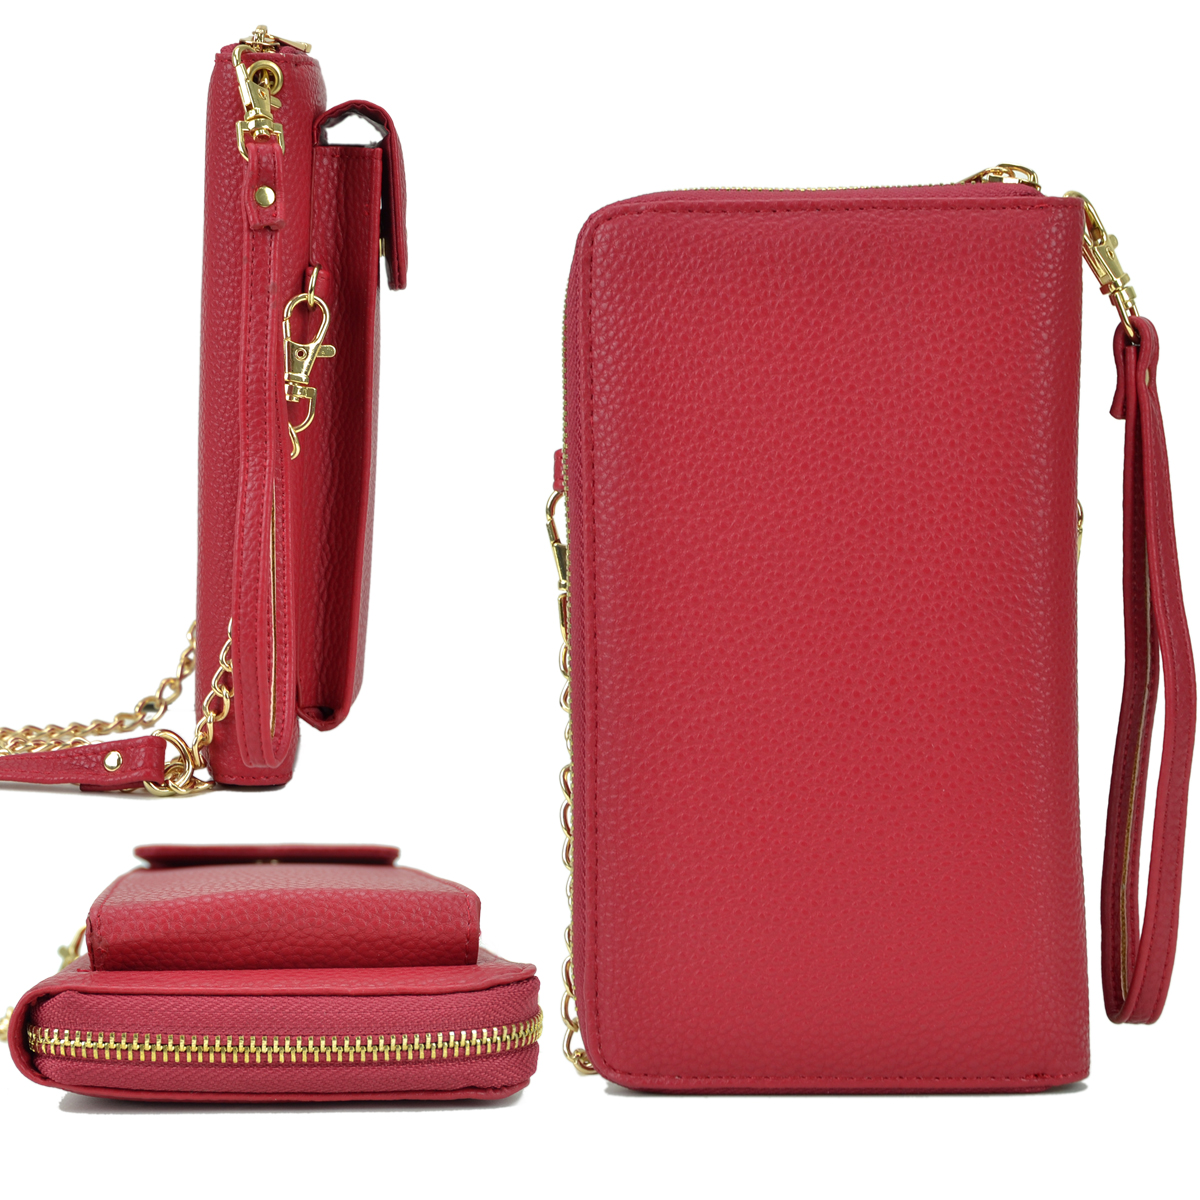 All-In-One Crossbody Wallet, Wristlet, with Phone case and Detachable Chain Strap